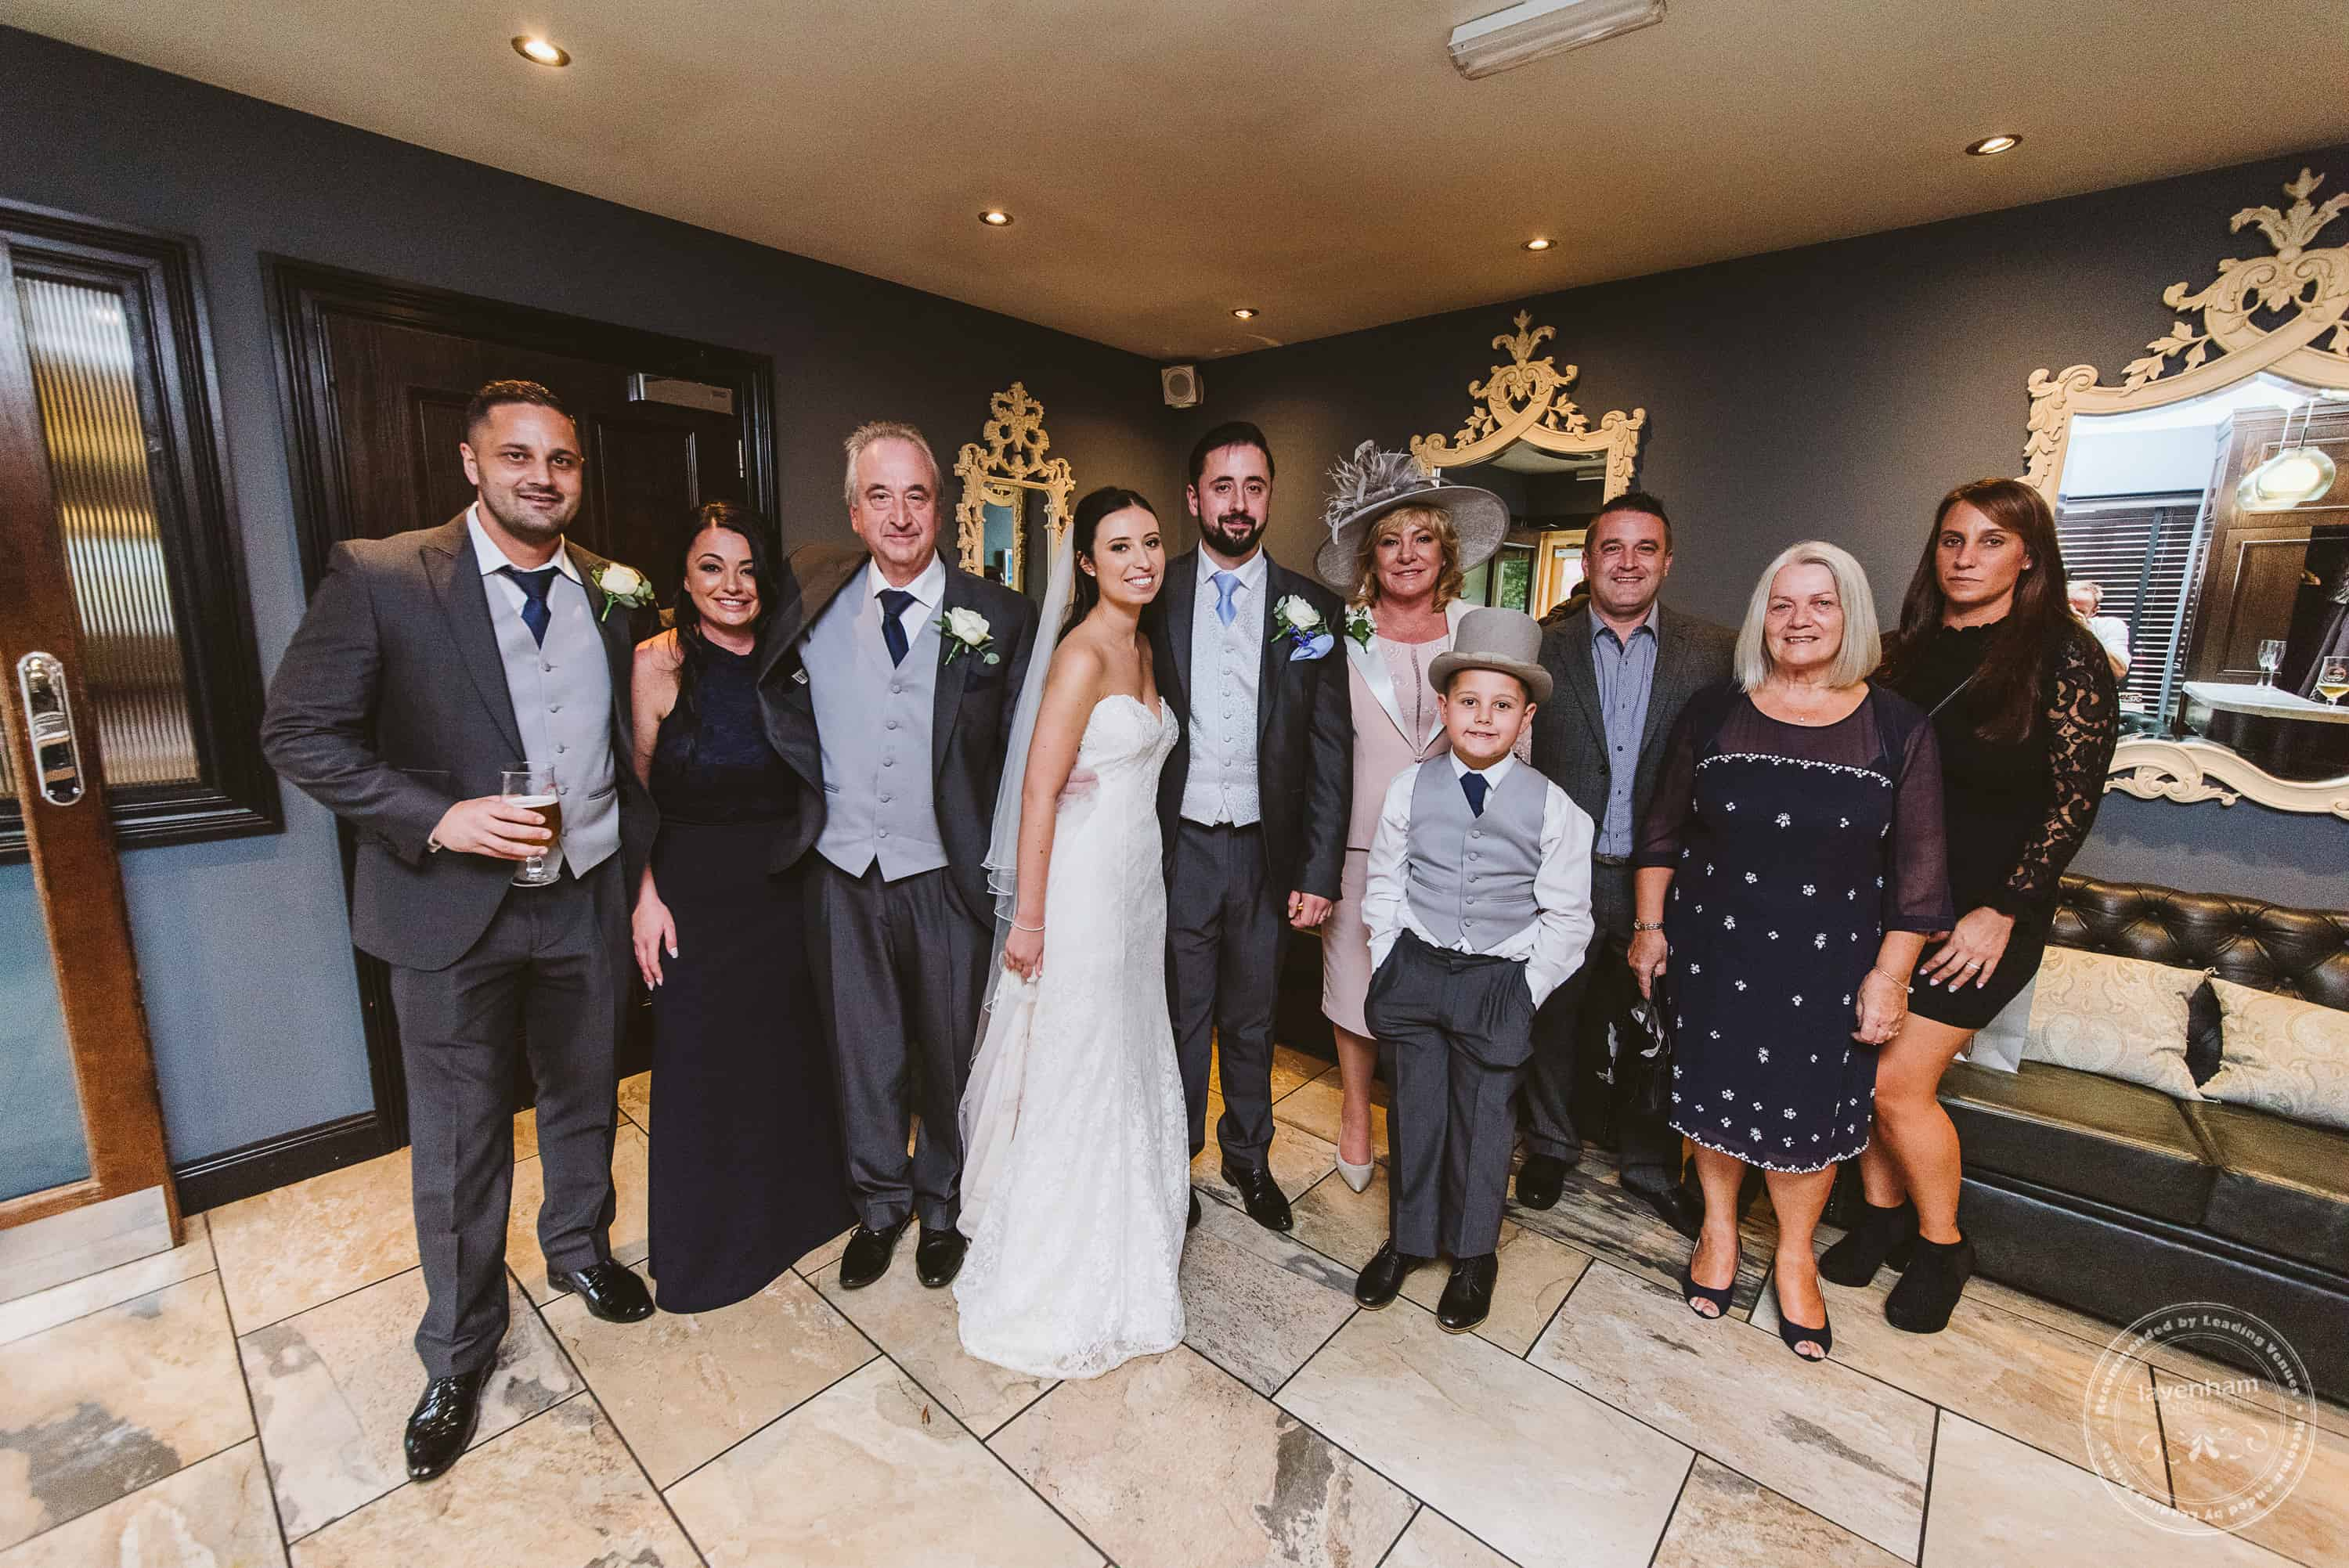 261019 Bull and Willow Room Essex Wedding Photographer 094